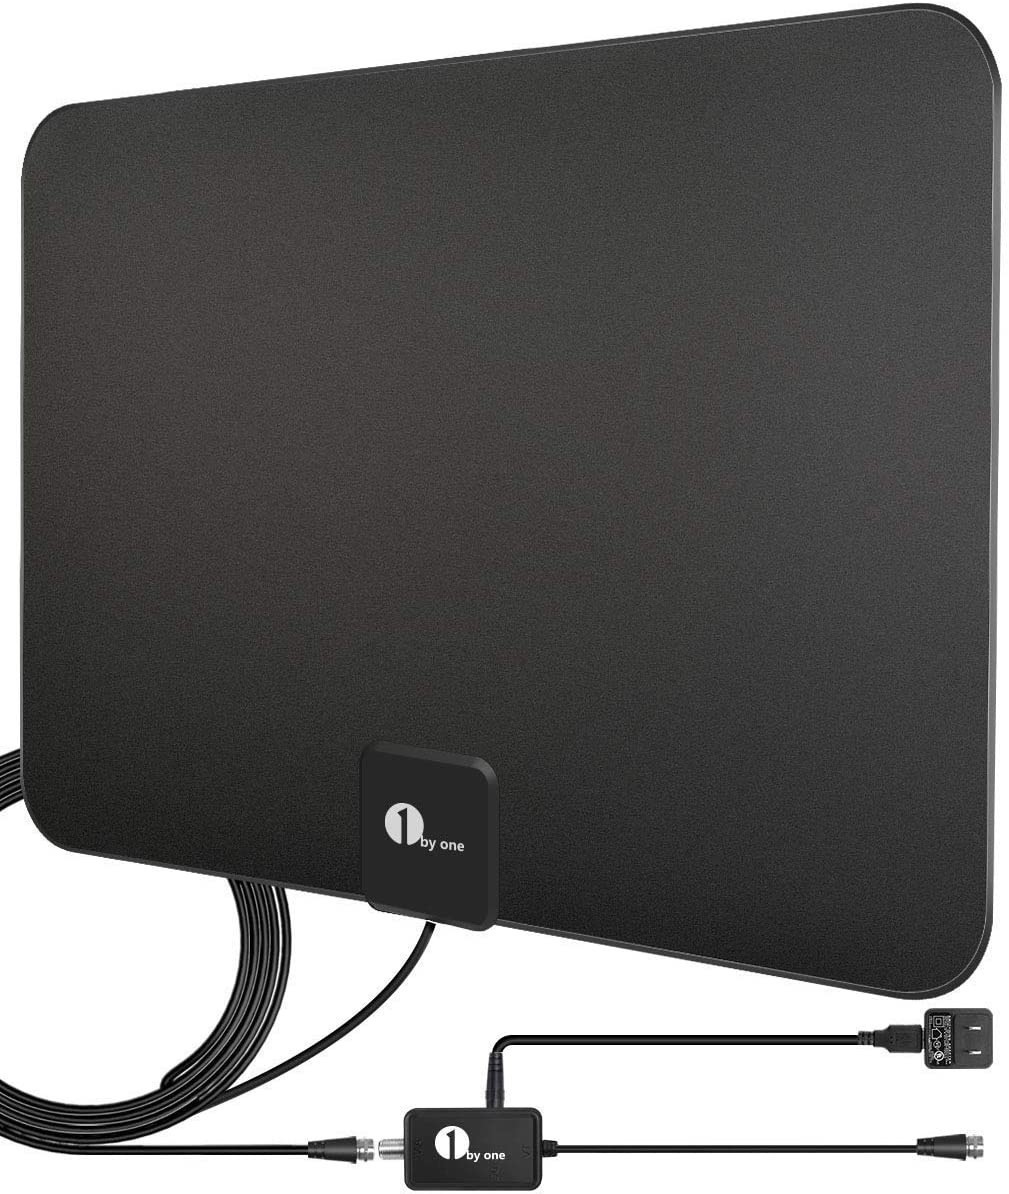 Best Antenna for TV without Cable or Internet 1 BY ONE